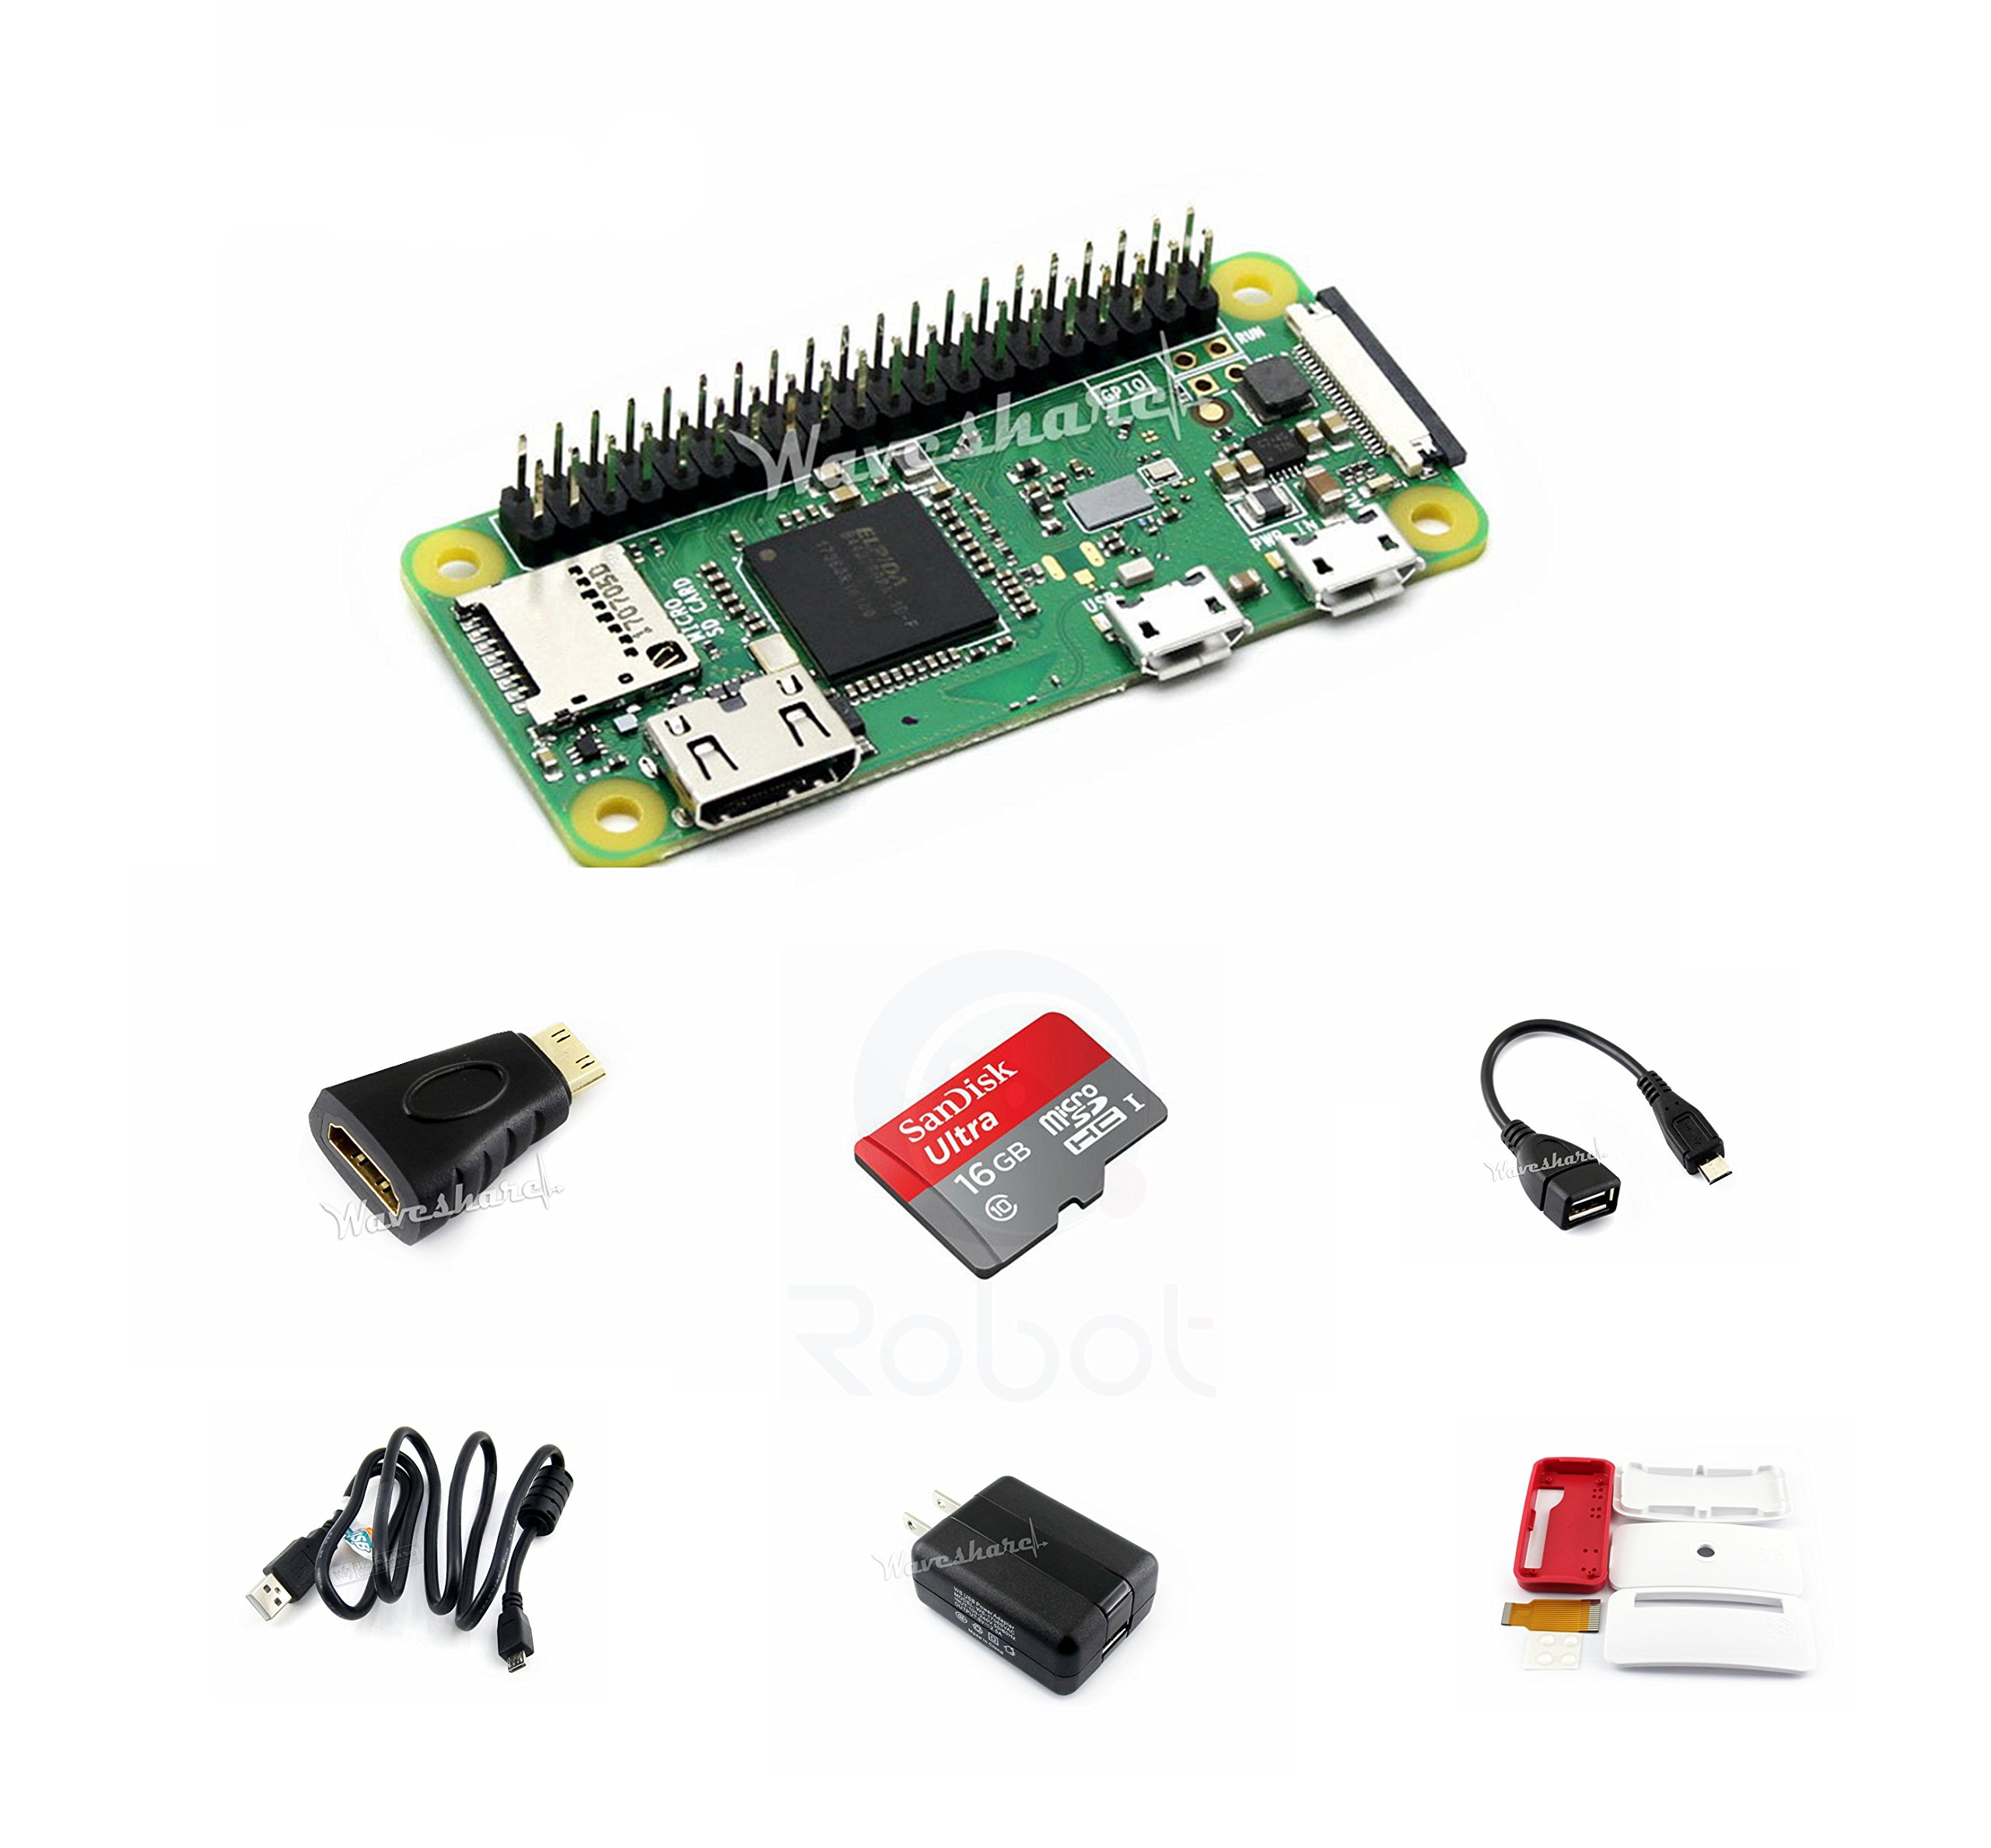 CQRobot Kit B with Official Case for Raspberry Pi Zero WH, Includes: Raspberry Pi Zero WH (Built-in WiFi) Micro SD Card, Power Adapter, Mini HDMI to HDMI Adapter, Micro USB OTG Cable and Components.